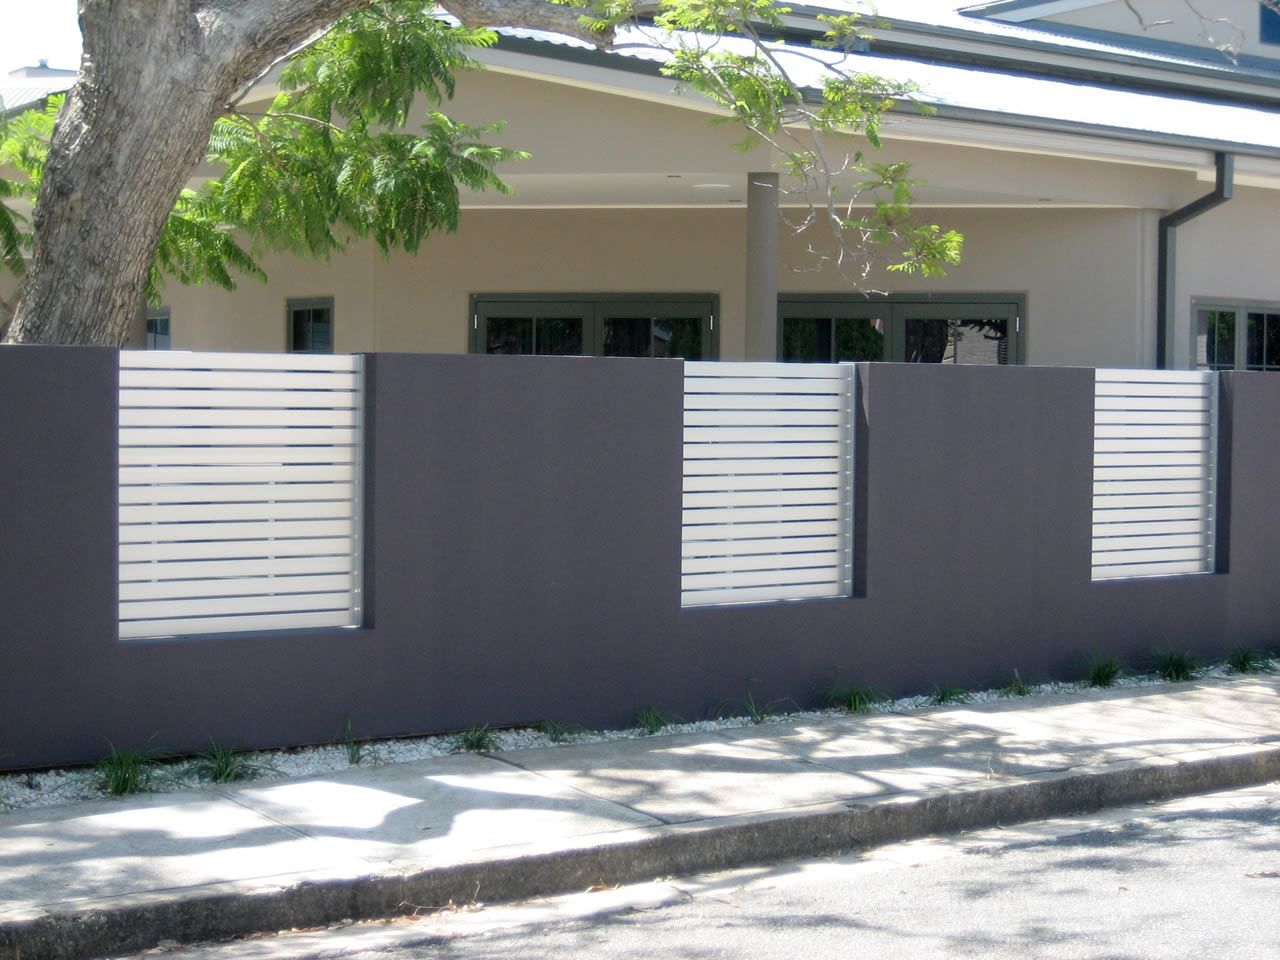 top 25 ideas about gates fences walls on pinterest fence design fence ideas and modular walls - Fence Design Ideas